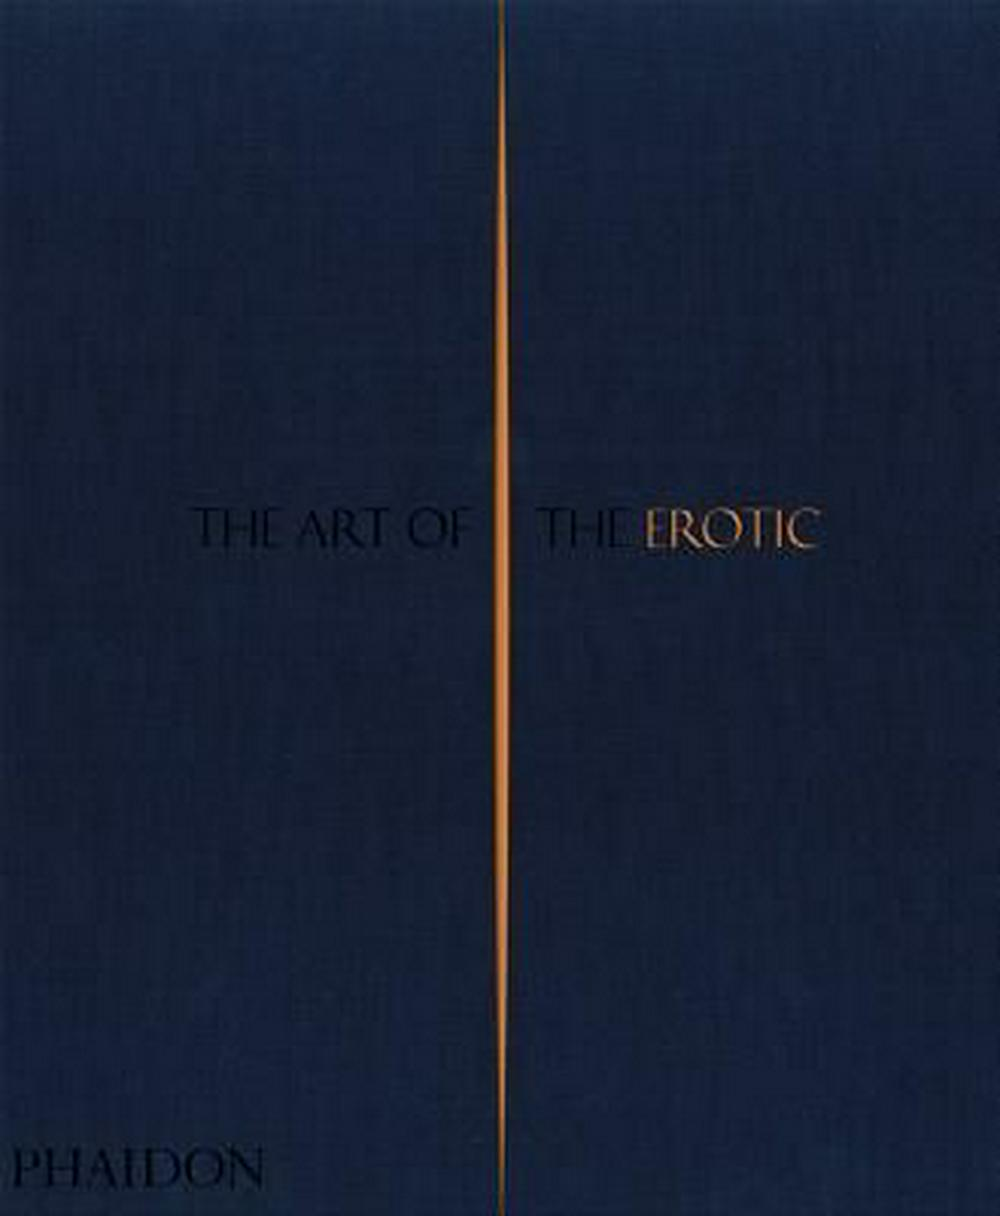 The Art of the Erotic by Phaidon Editors, ISBN: 9780714874241